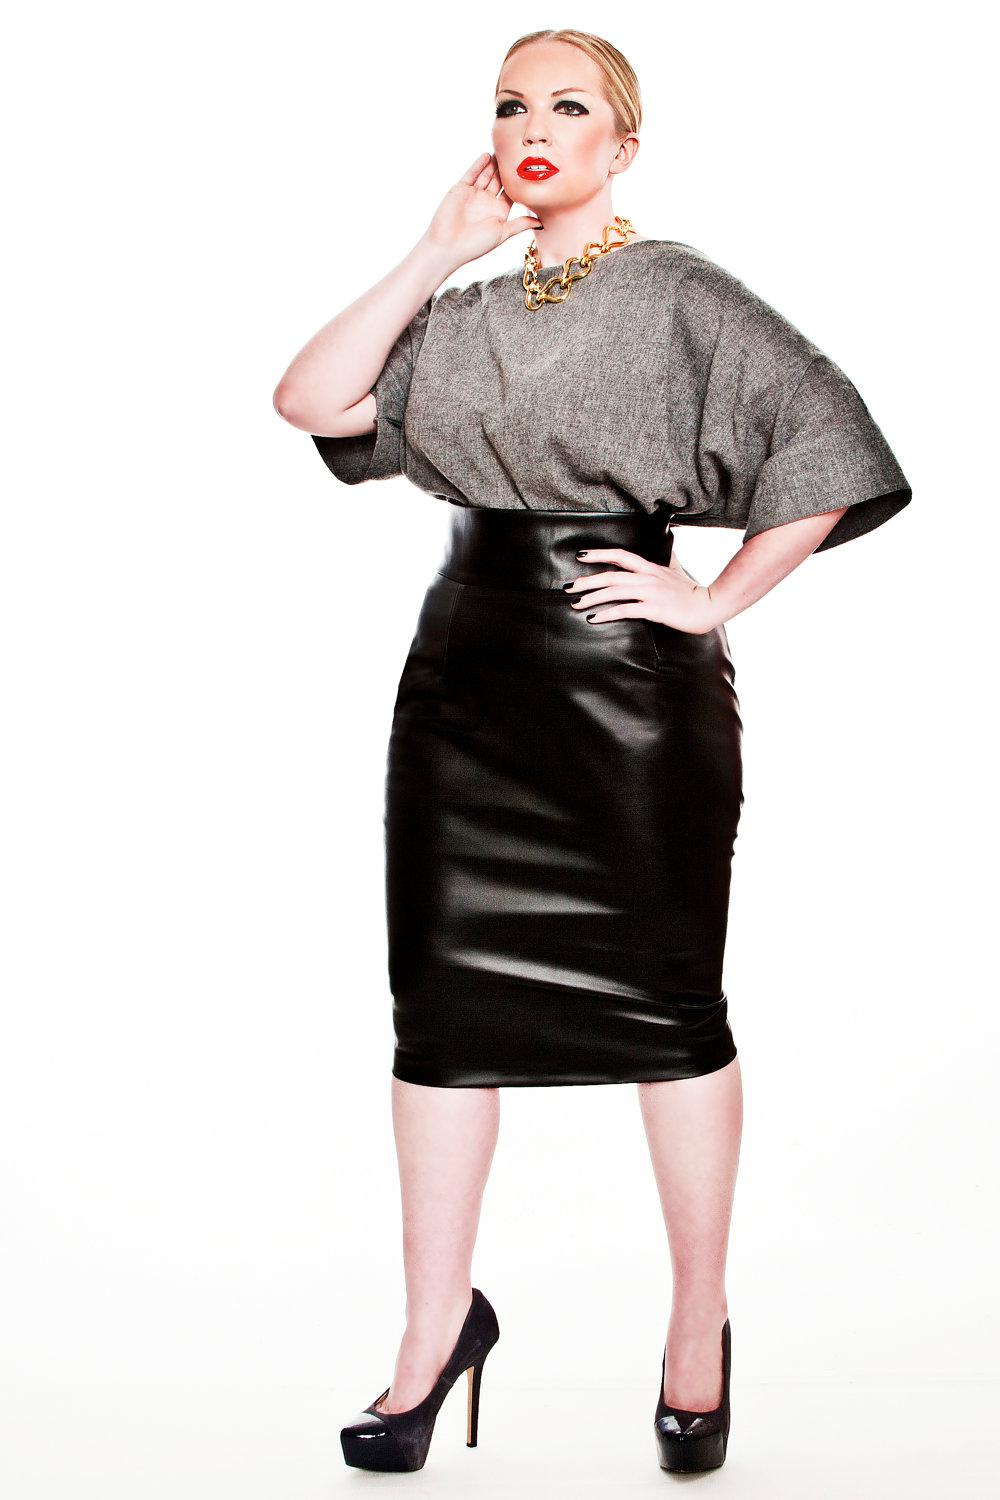 Plus Size pencil skirt outfits